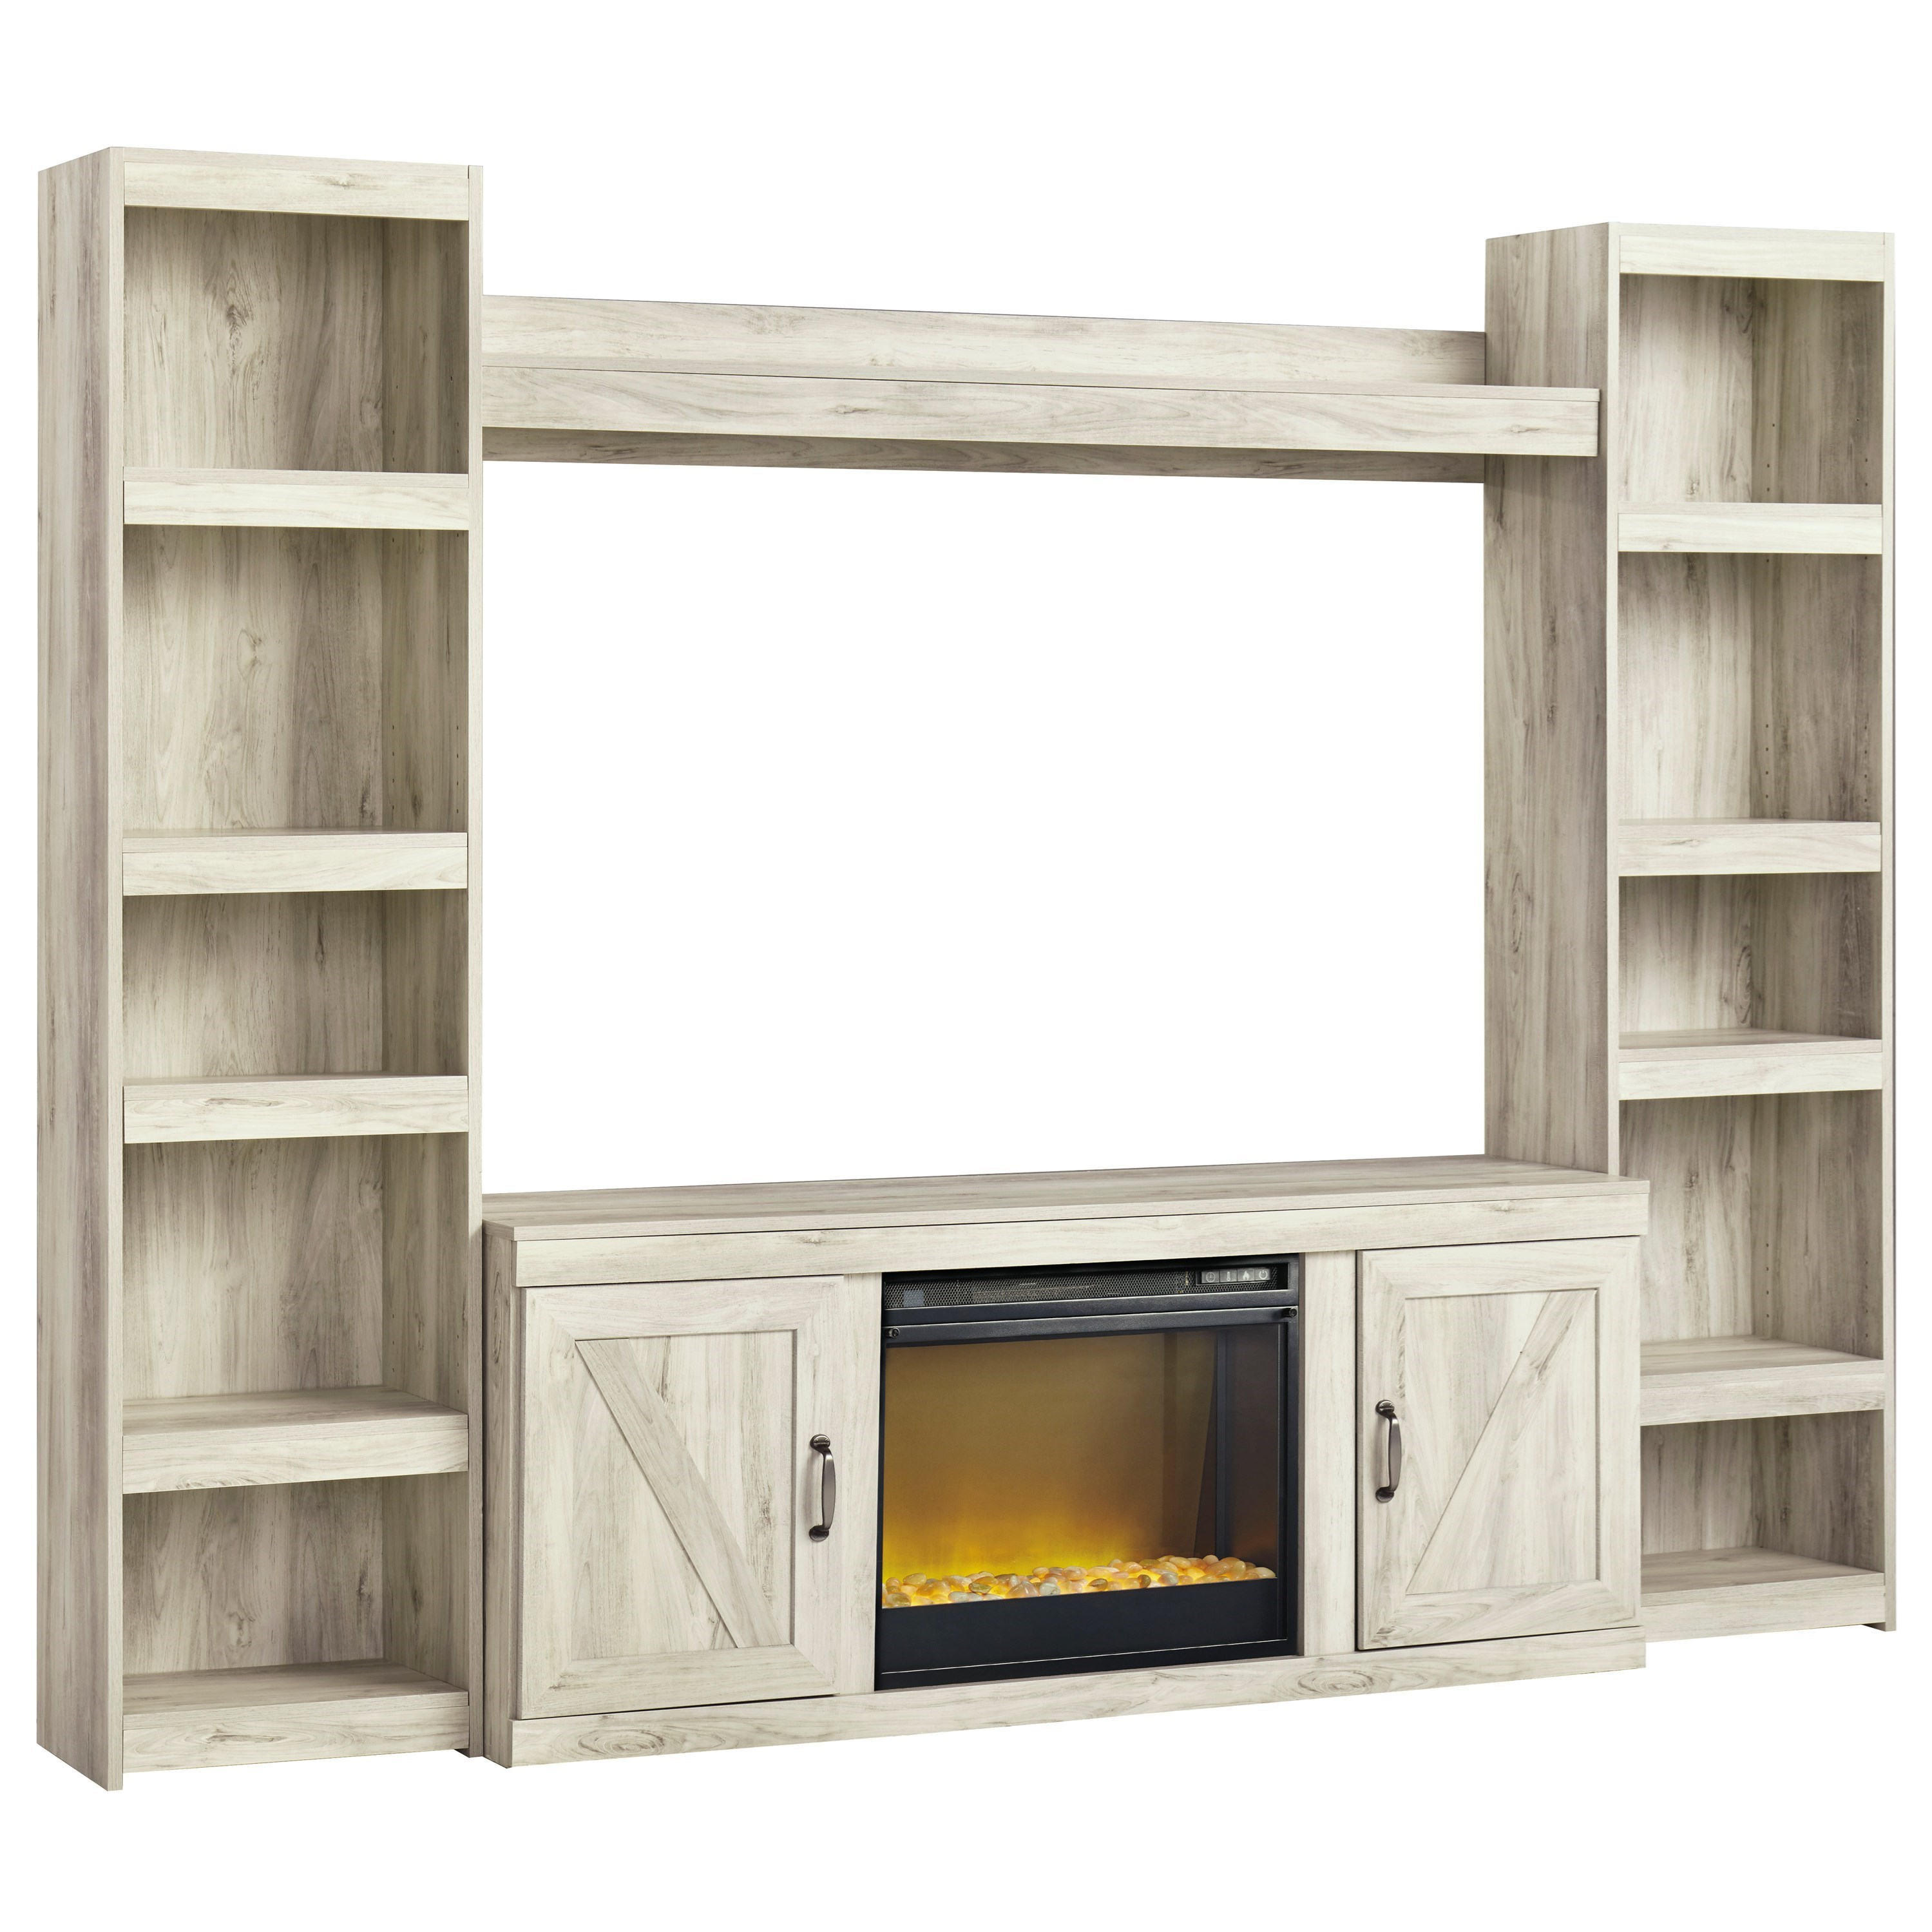 Bellaby TV Stand w/ Fireplace, Piers, & Bridge by Signature Design by Ashley at Household Furniture